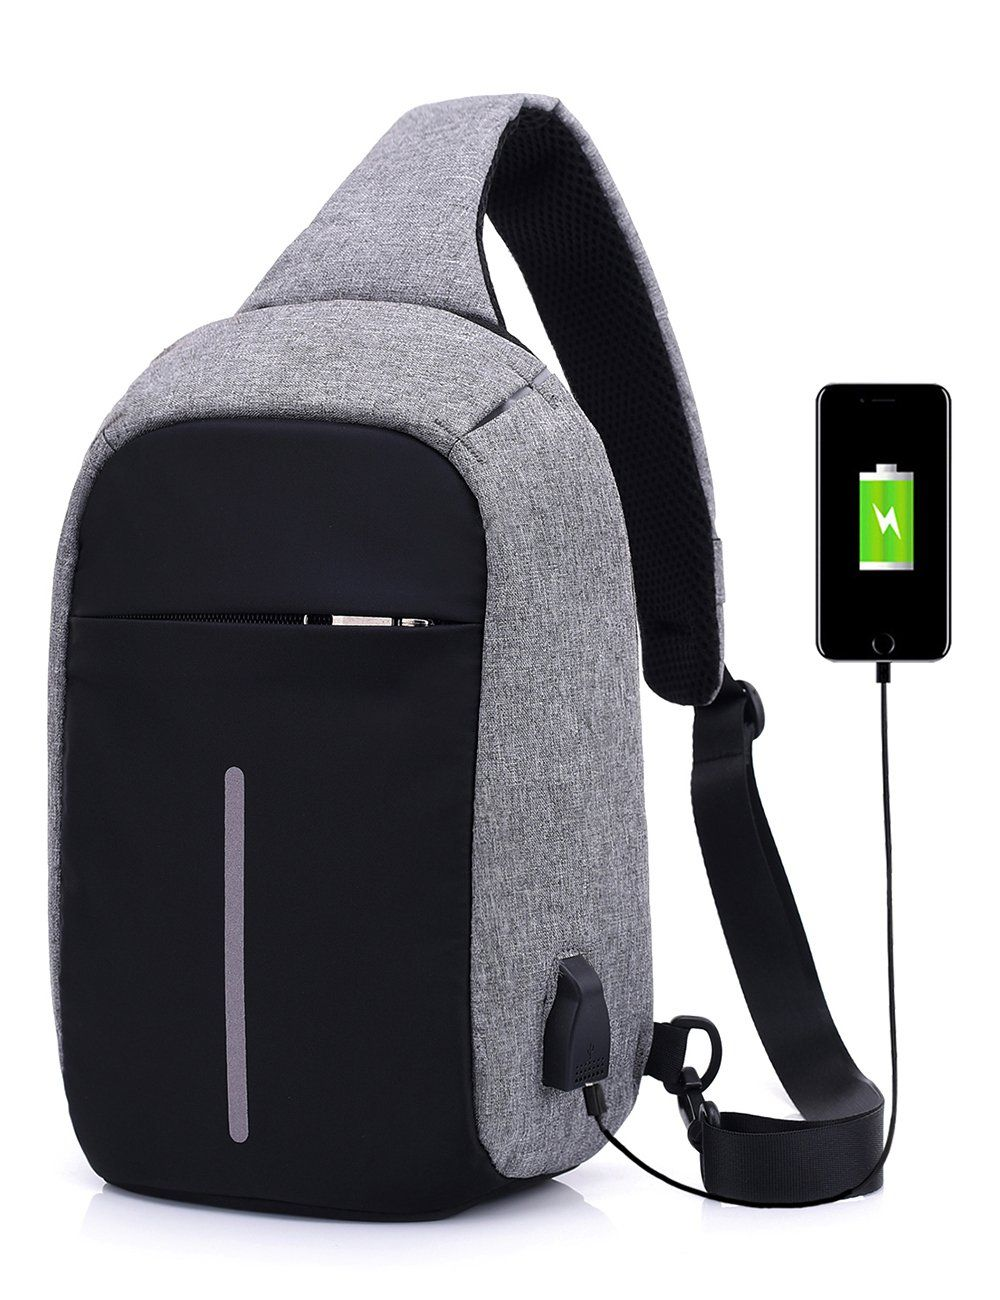 705c9d7ab6 Anti-Theft Sling Bags Chest Shoulder Bag Pack Crossbody Backpack with USB  Charge Port Daypack